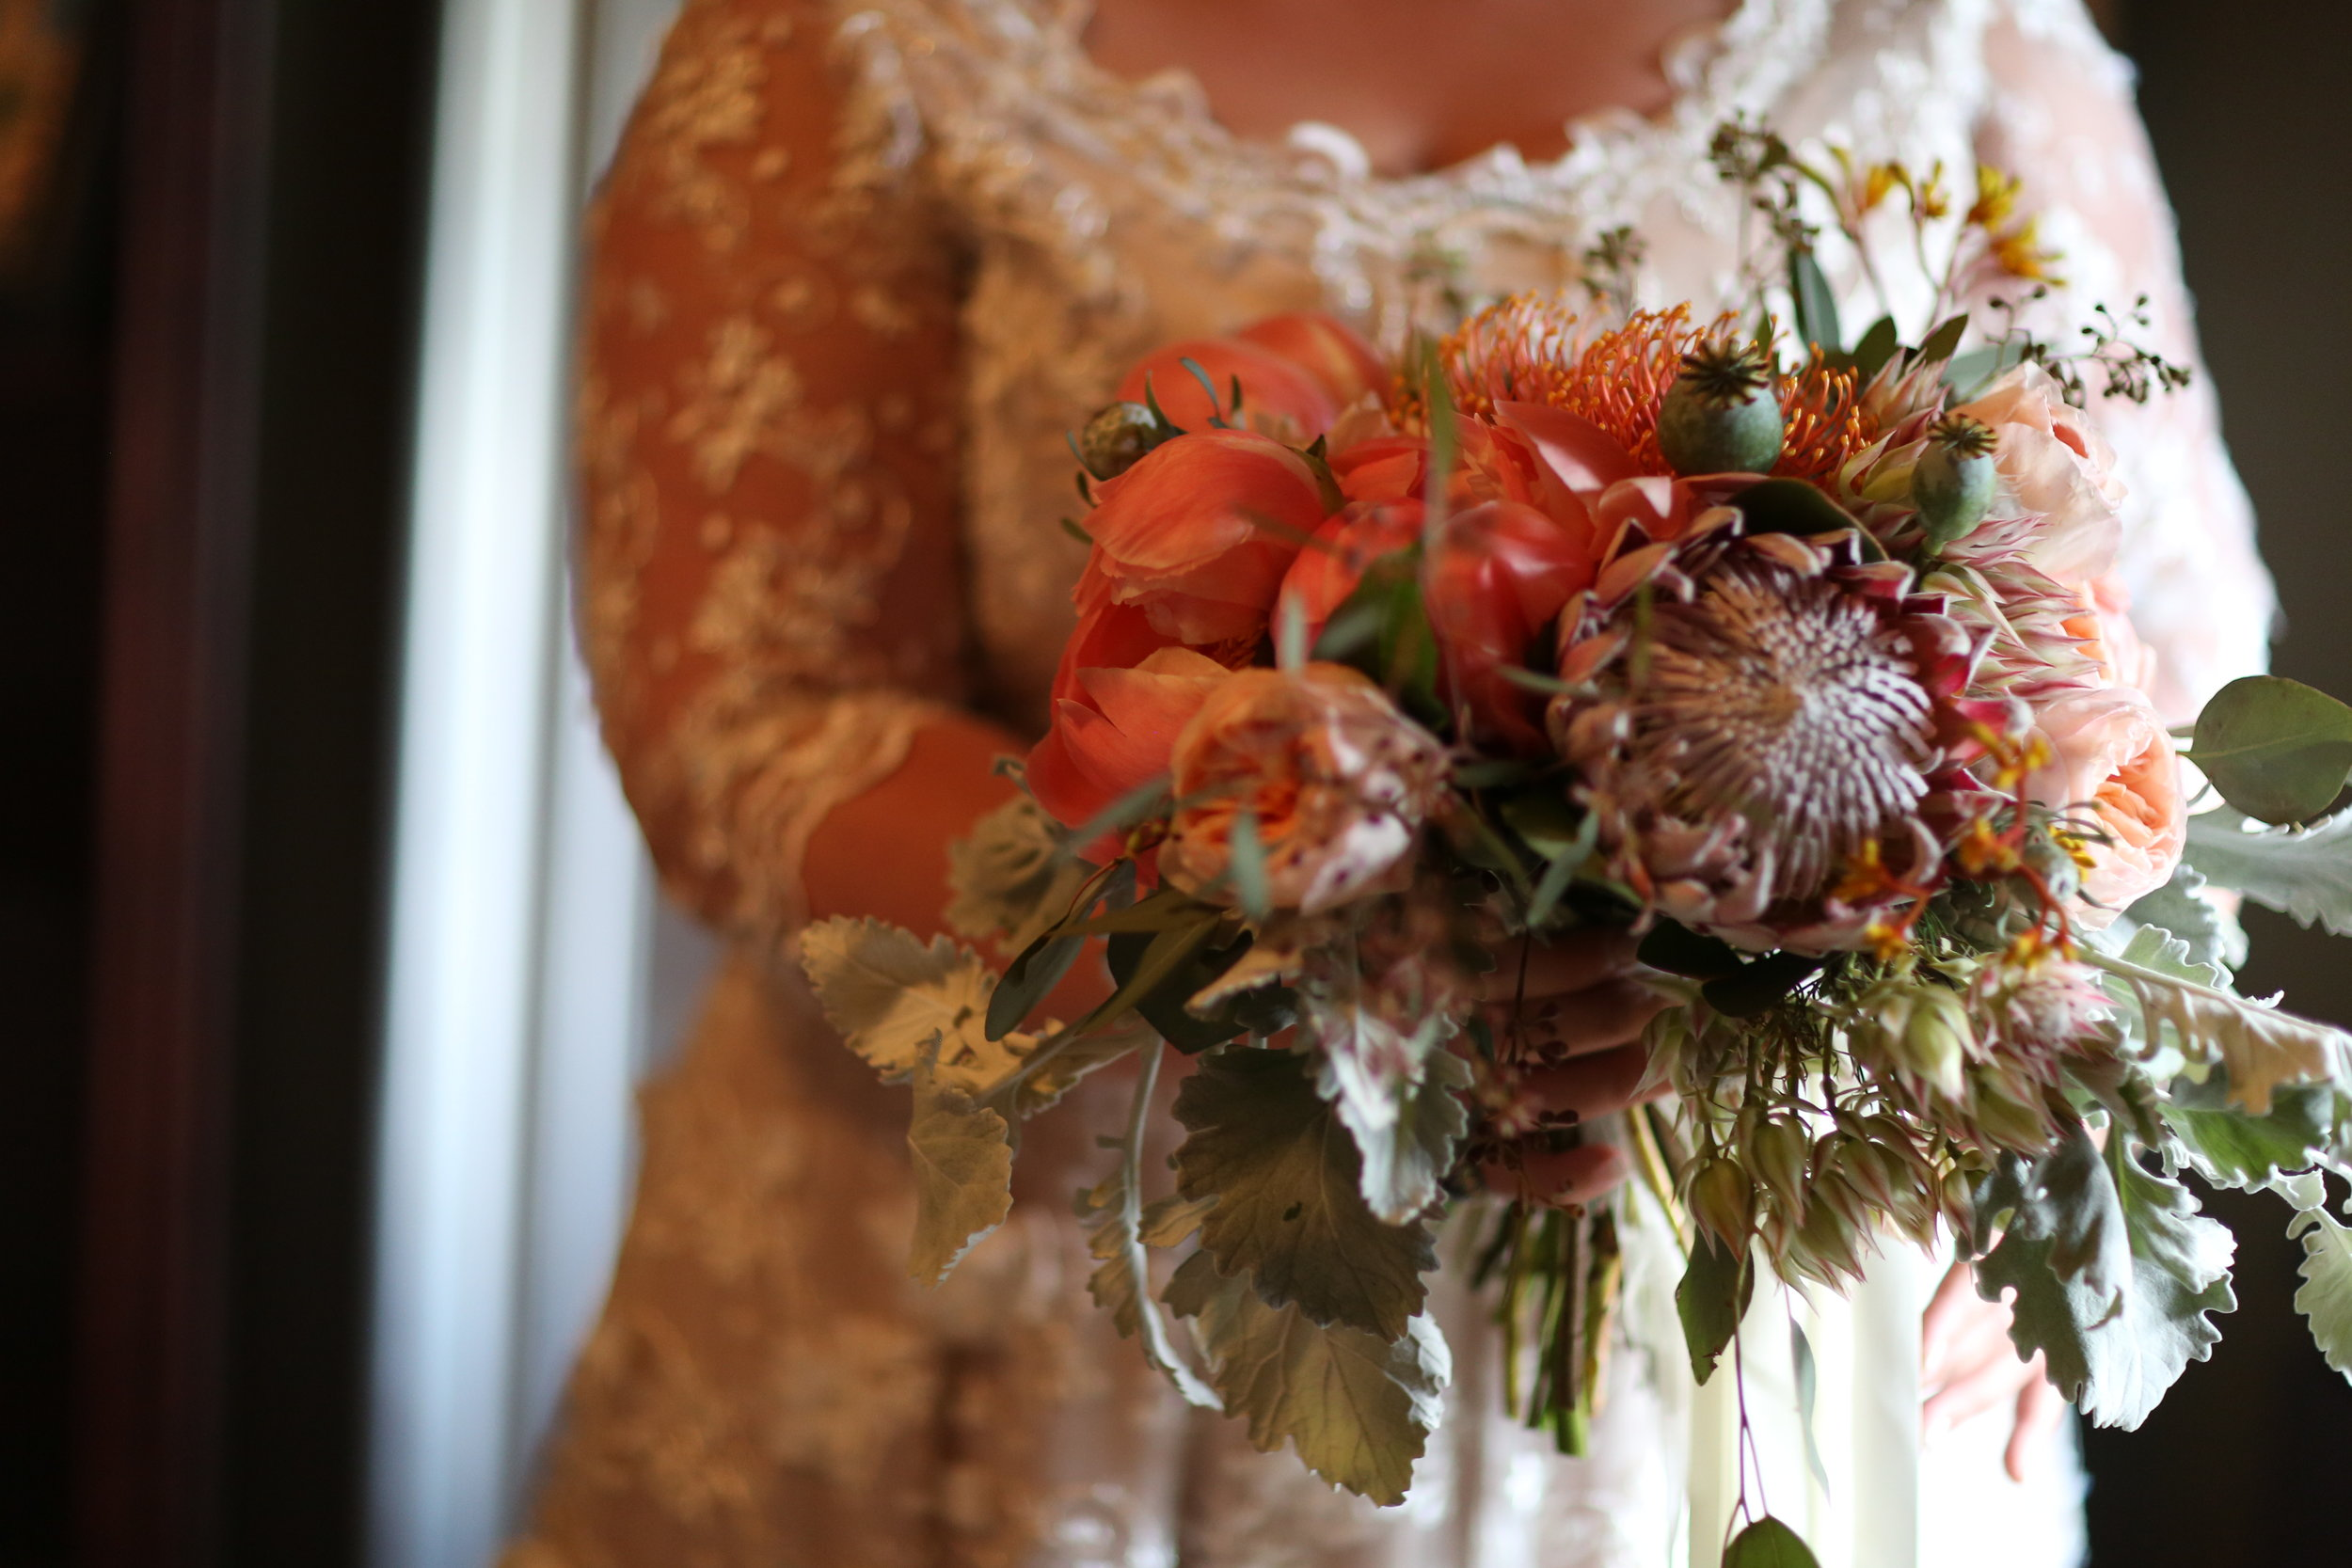 Coral bridal bouquet with king protea and peonies. Bride holding it.